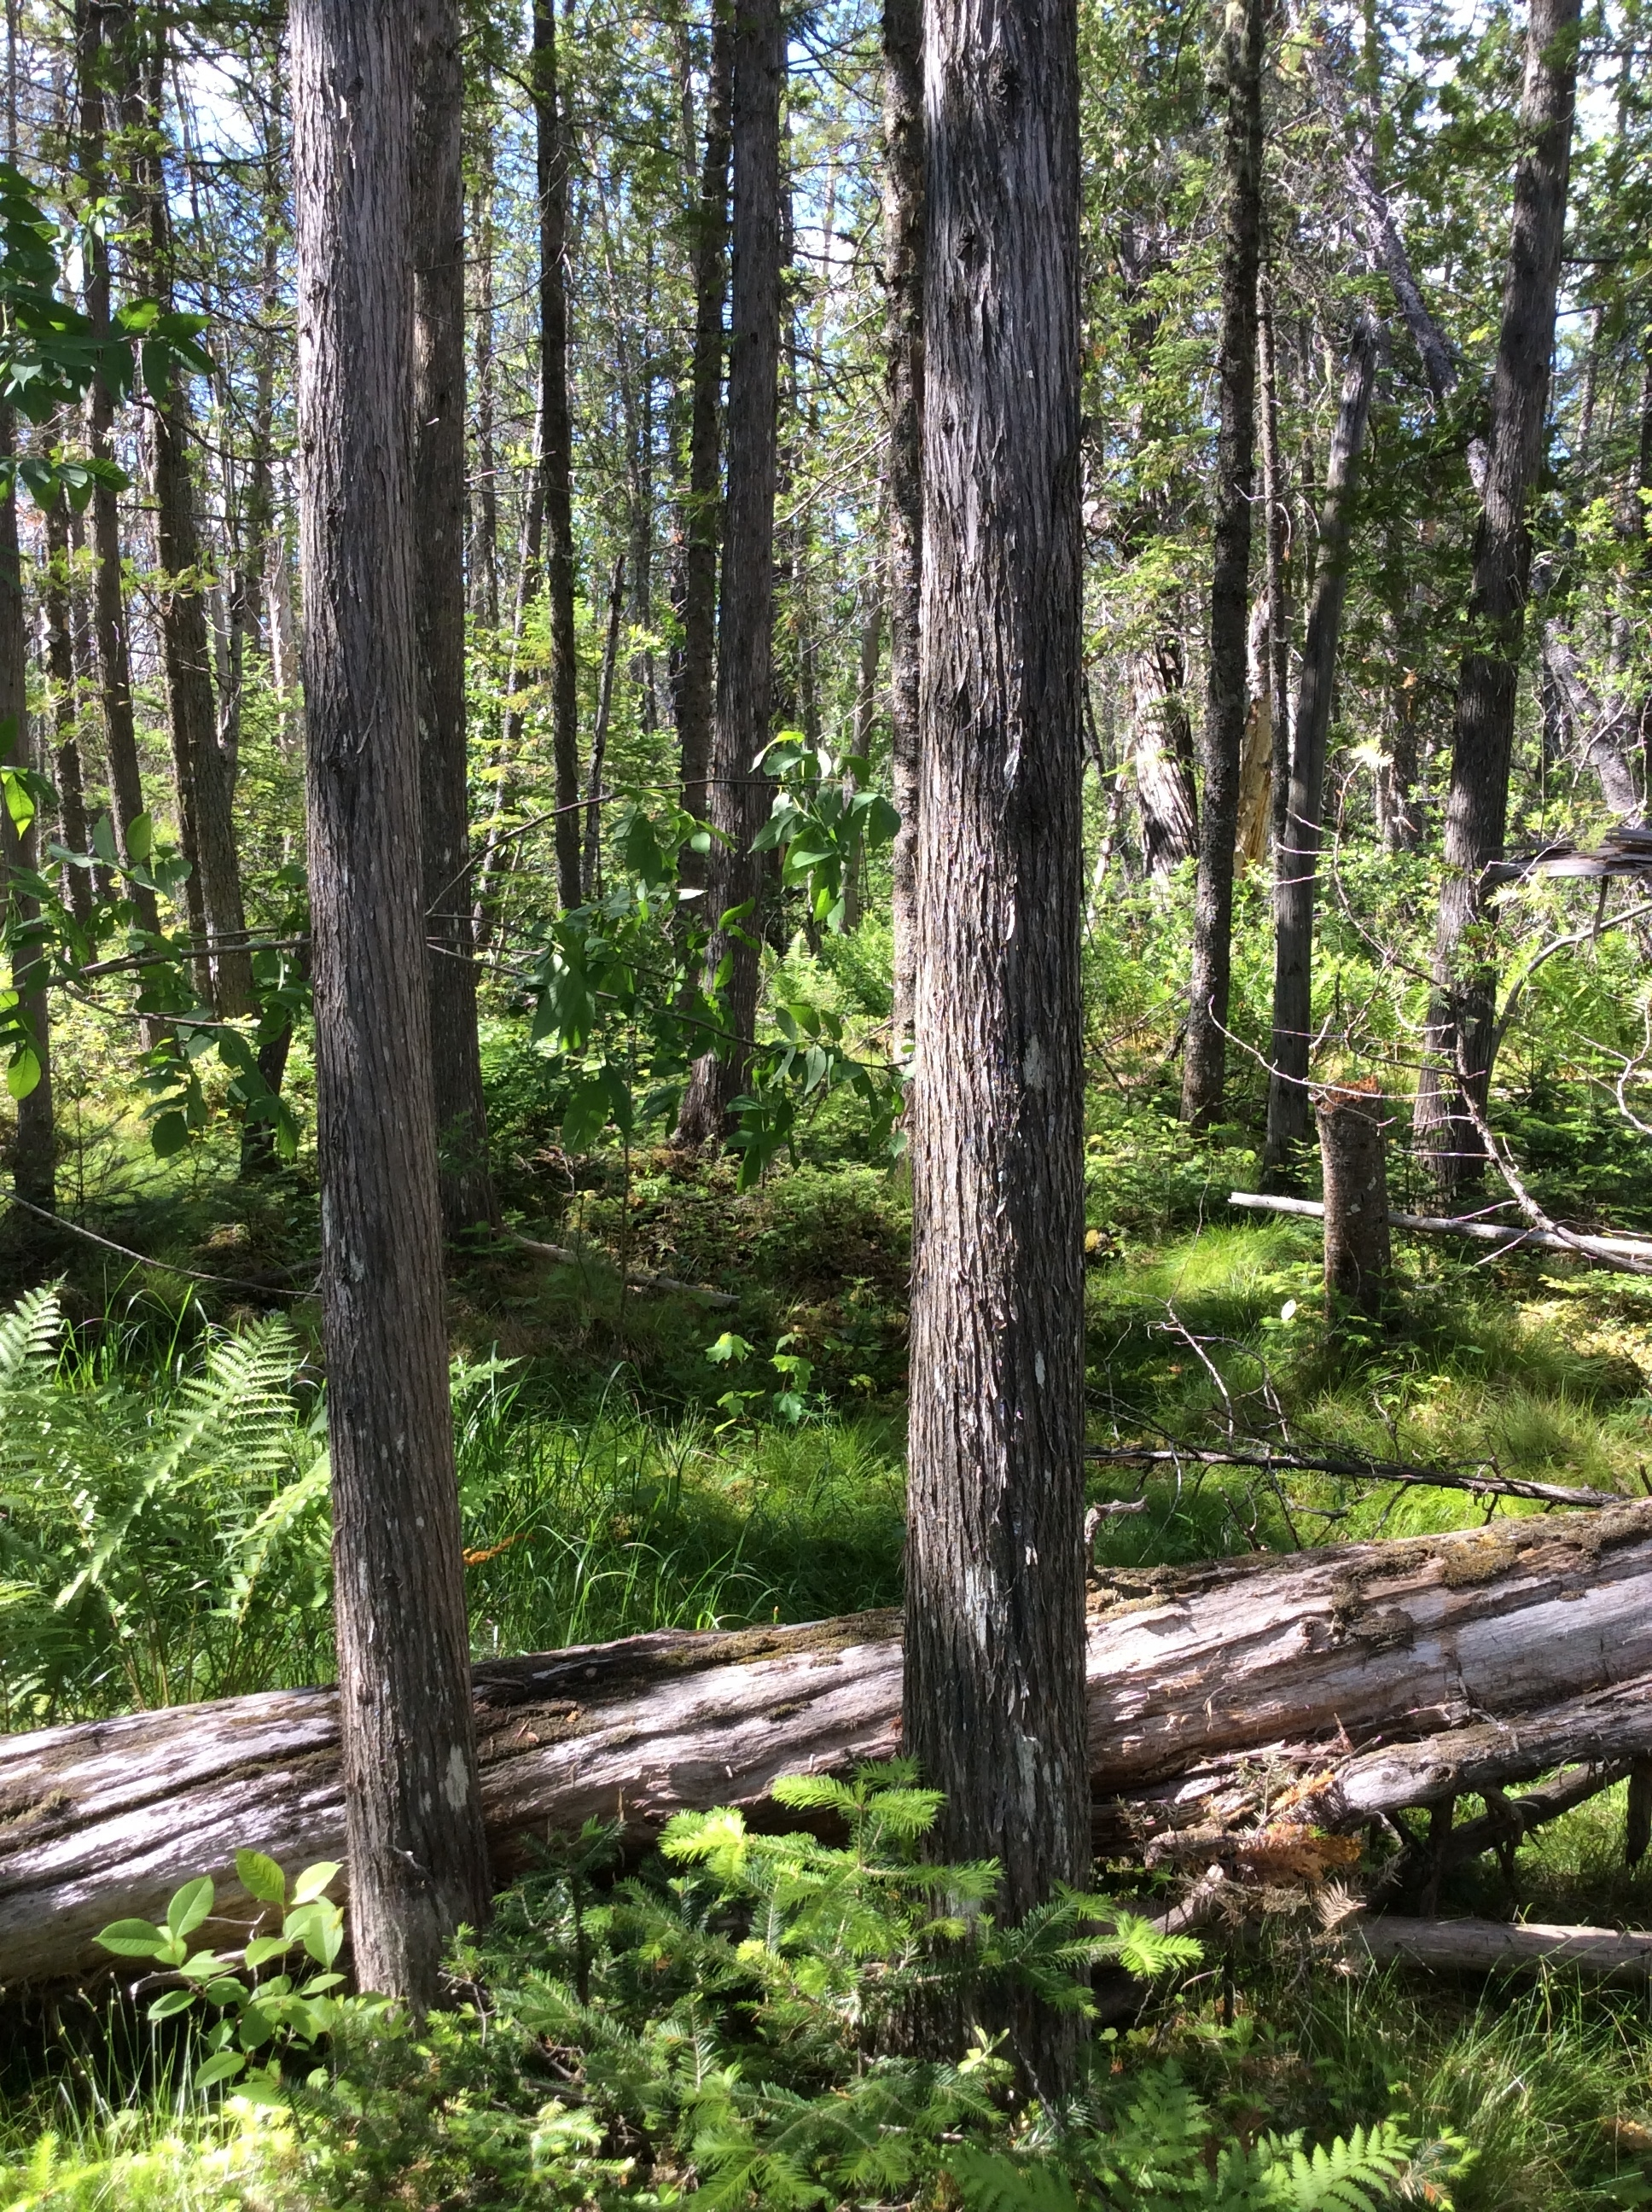 By giving towns control over their own land and water, community forests are a powerful force for strengthening rural communities.